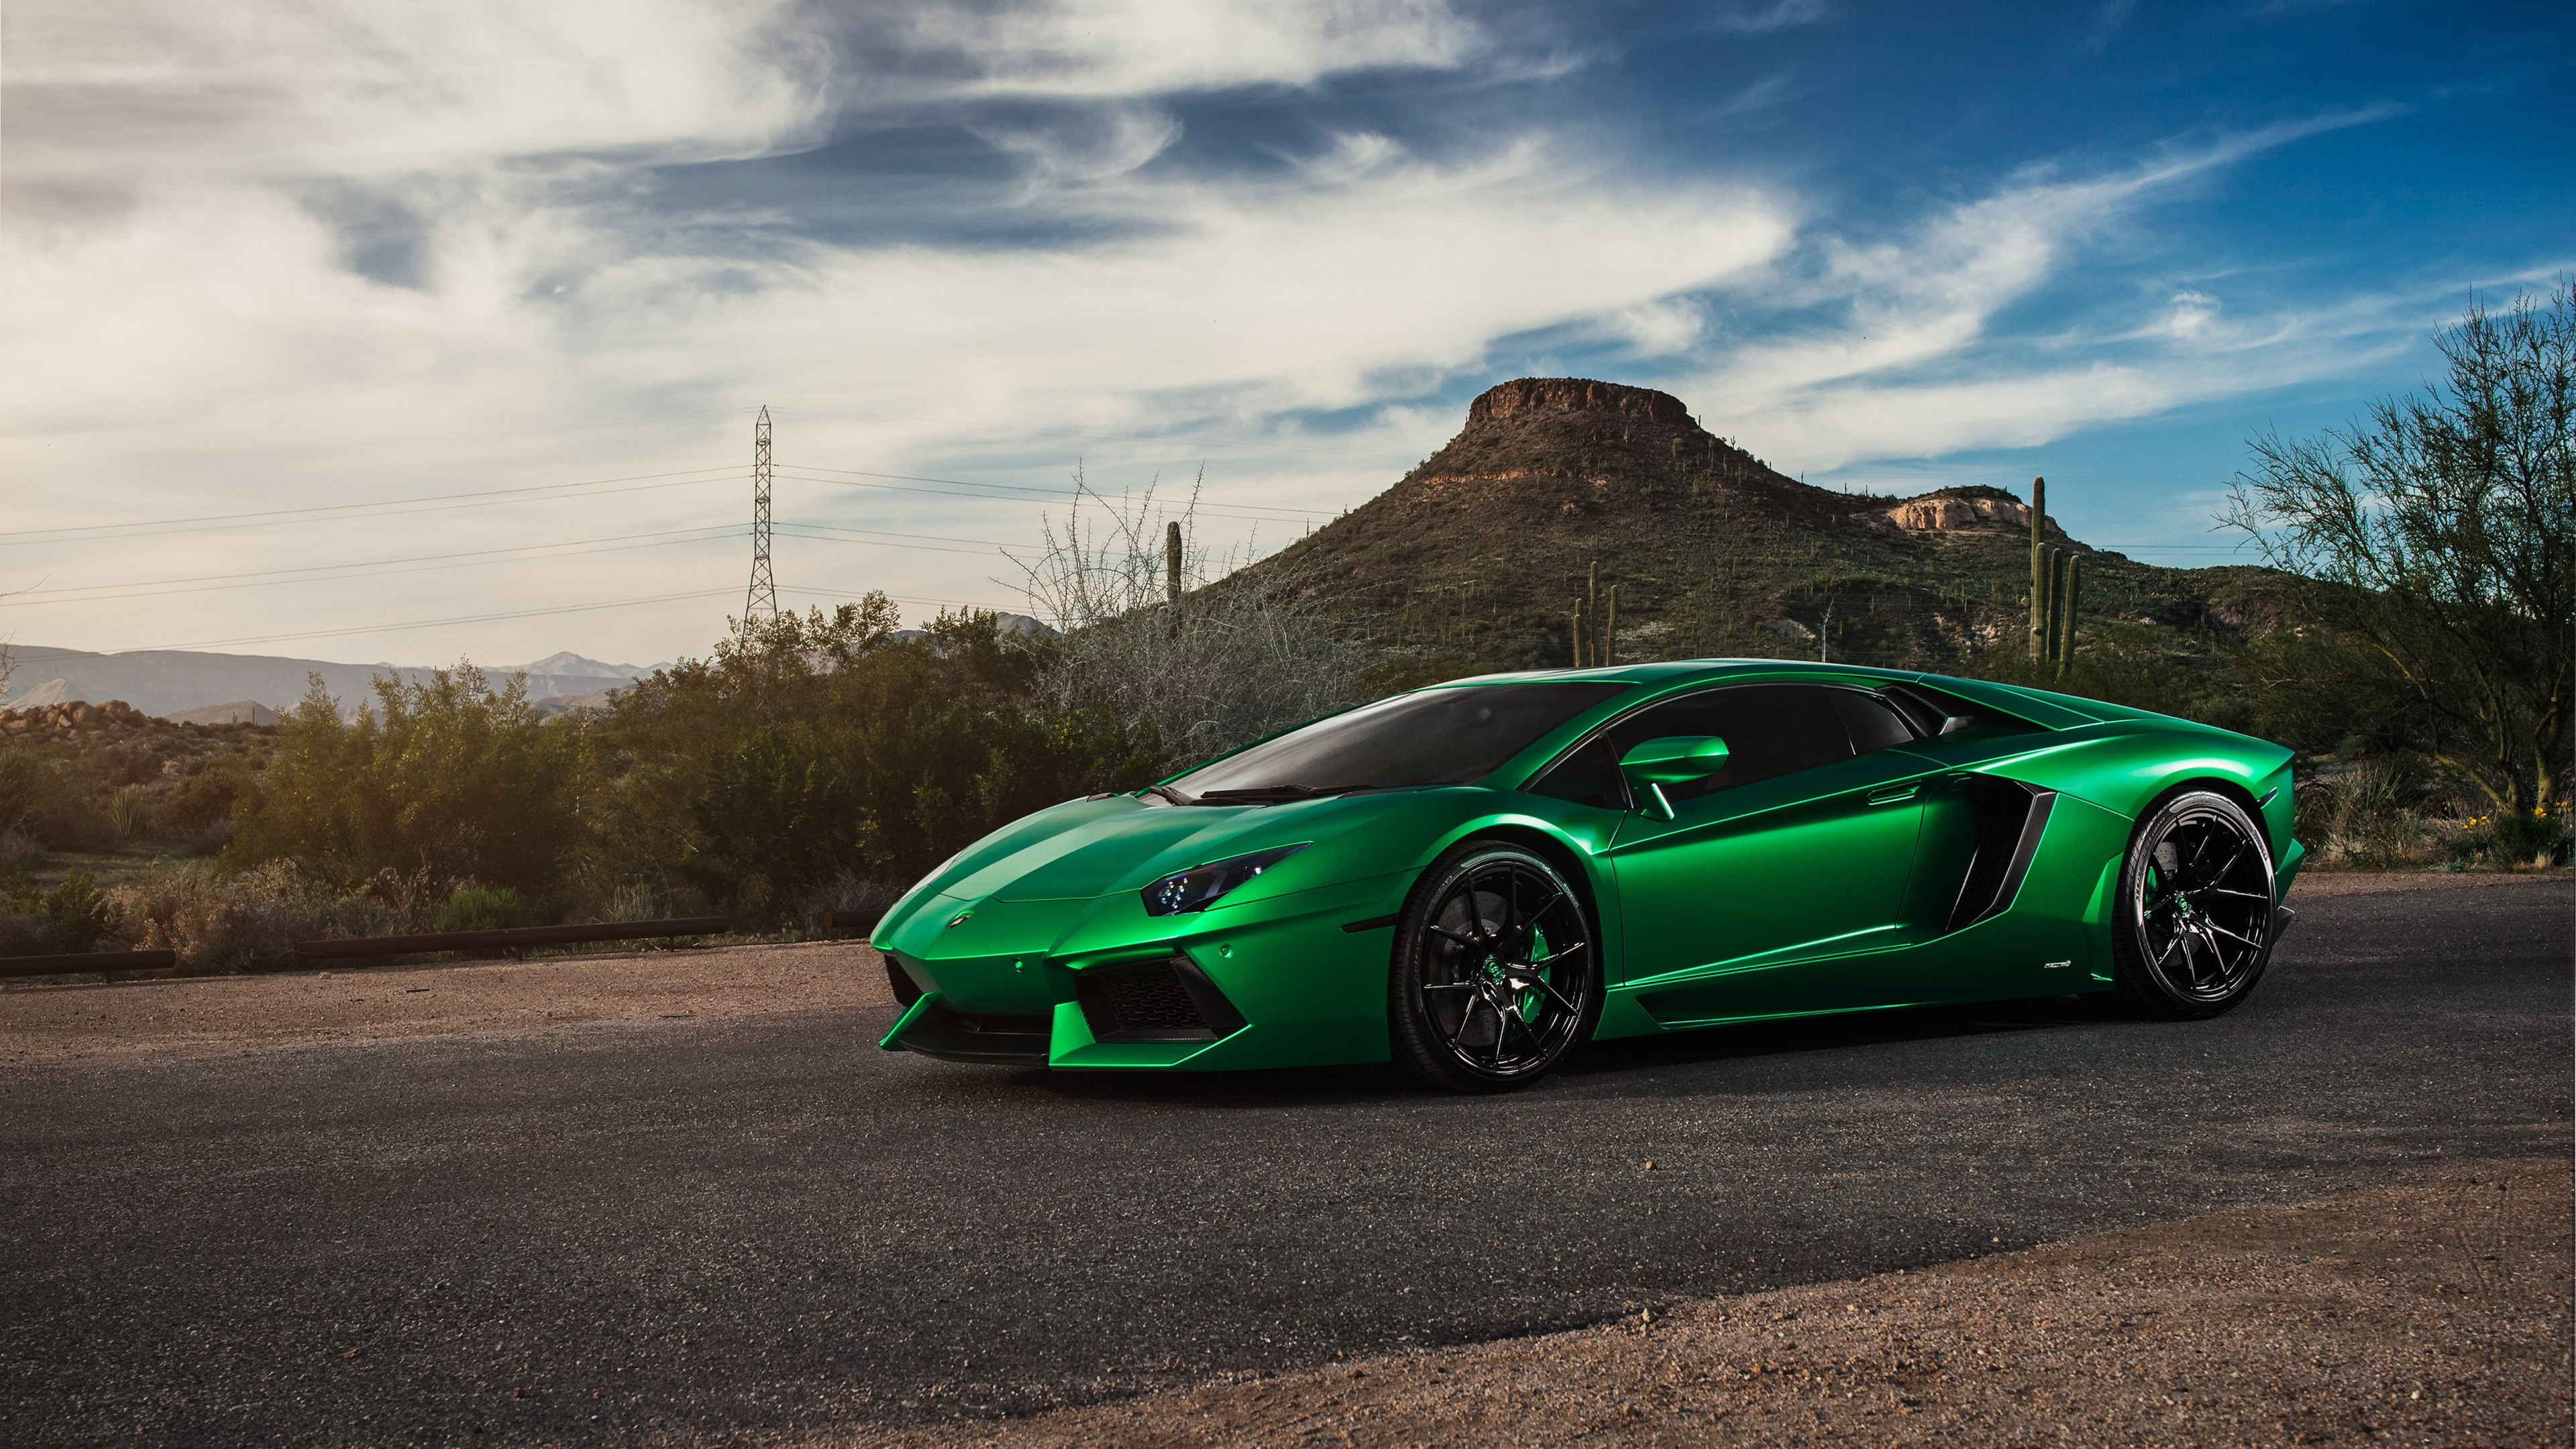 Lamborghini Aventador Green 4k  HD Cars  4k Wallpapers  Images     Lamborghini Aventador Green 4k